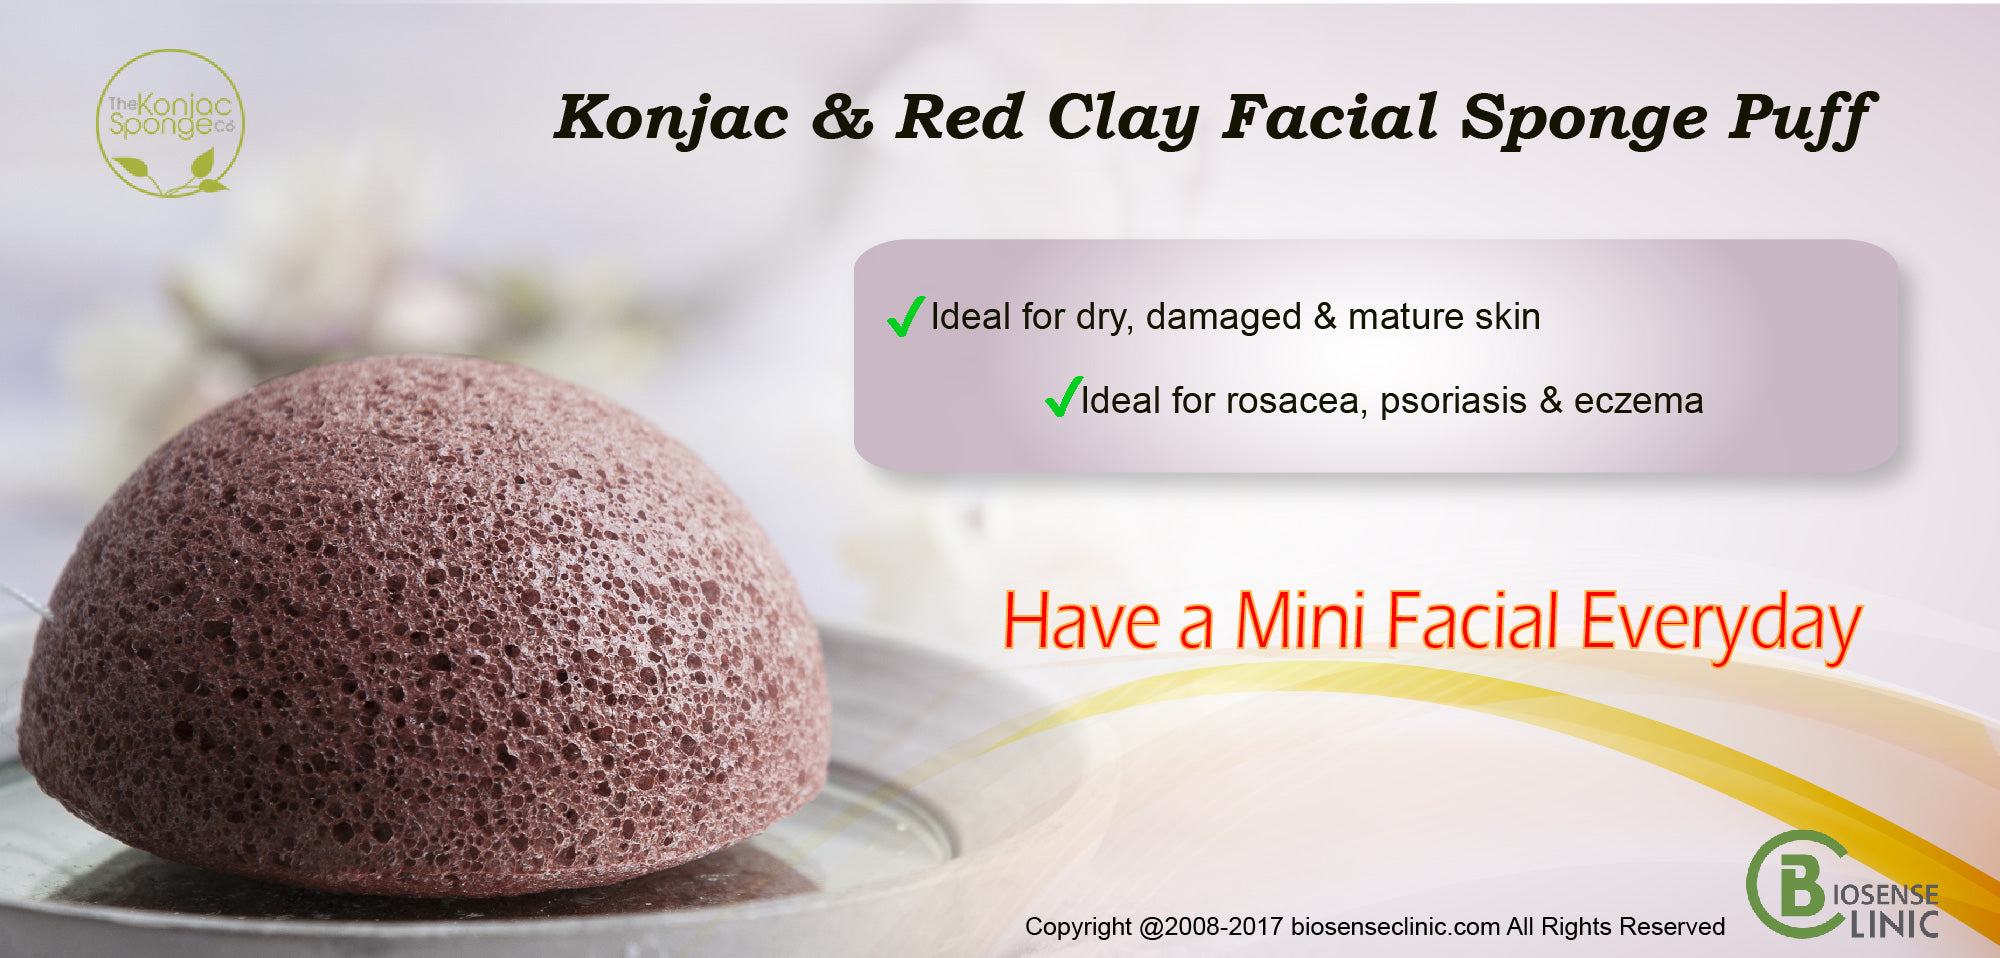 Konjac & Red Clay Facial Sponge Puff banner